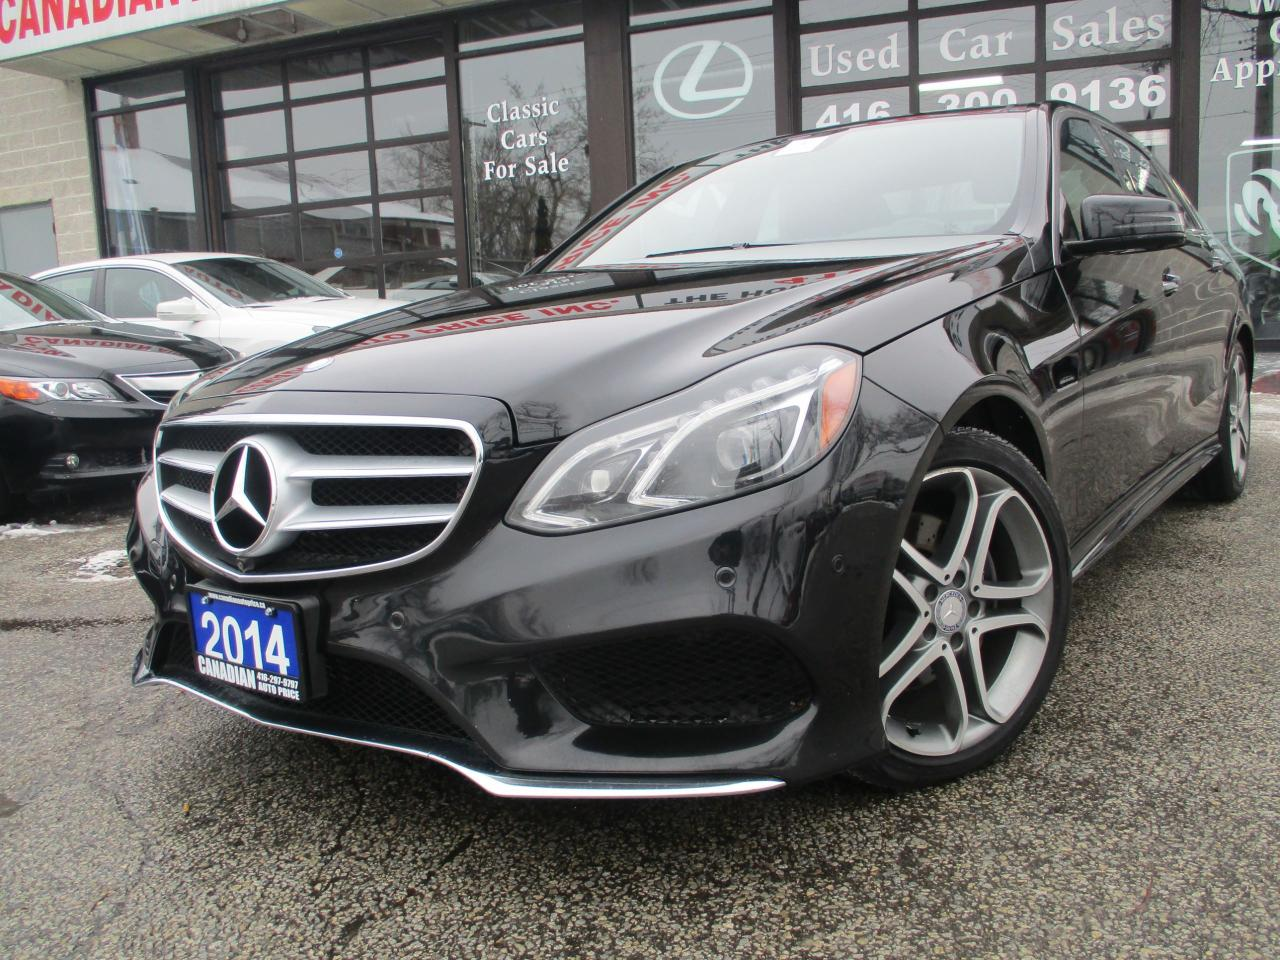 Used 2014 mercedes benz e class e250 bluetec 4matic nav for 2014 mercedes benz e class e250 bluetec sedan review